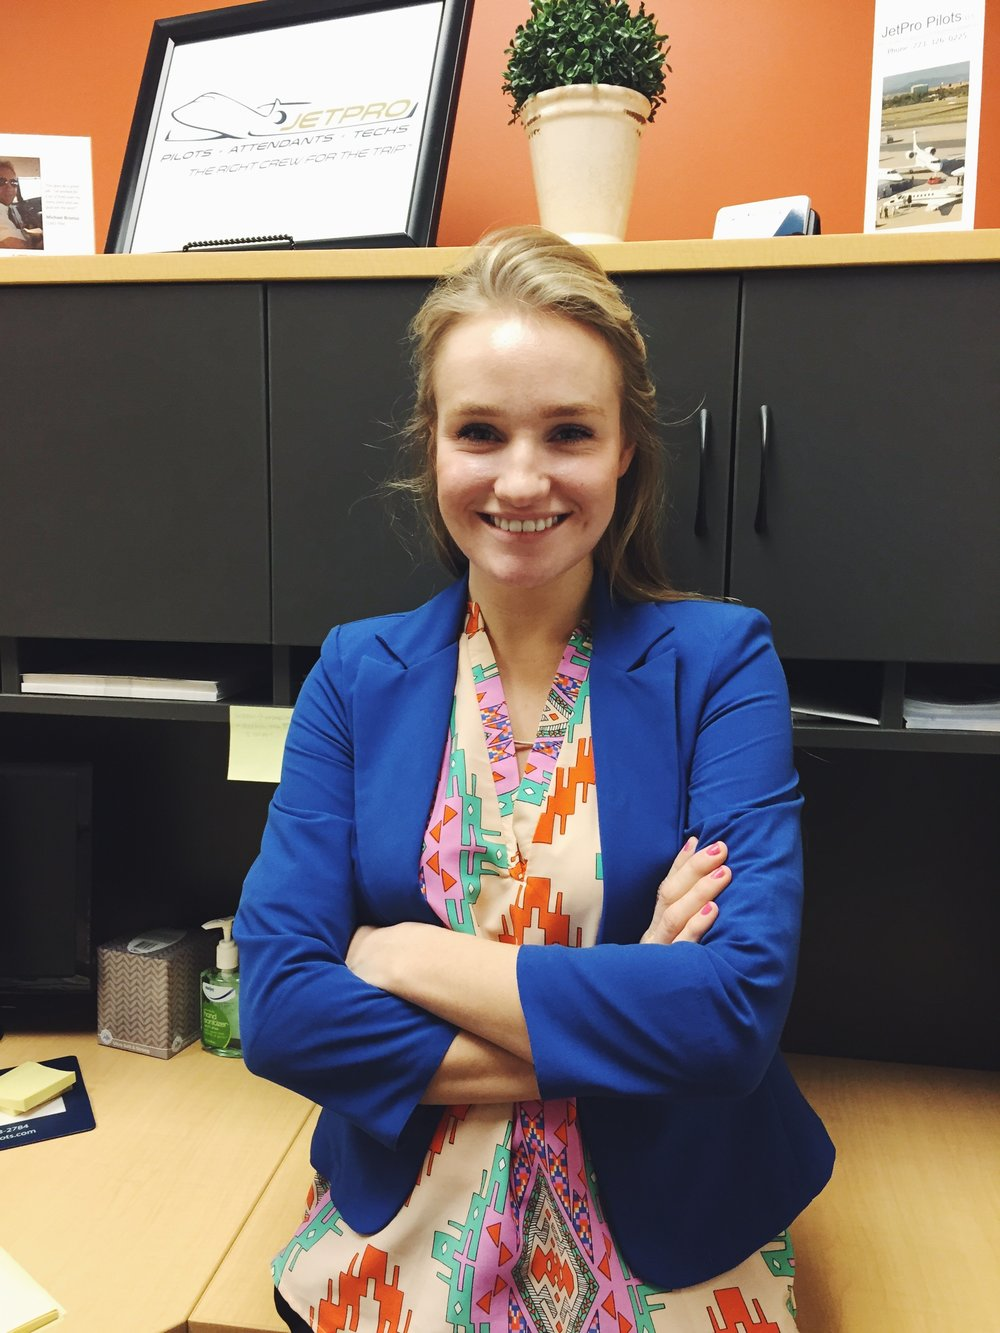 """""""In my internship experience, I have learned strategies in leadership from my supervisor, skills in graphic design, and marketing strategy and research. Working as a marketing intern of a startup business, I have learned much about marketing within the marketing department and how it can expand and grow the company. I have had the opportunity to develop a marketing plan, menu, and model for JetPro pilots as well as carry out other work such as conducting market research, and developing strategy. I have learned new things in Photoshop, the art of Hootsuite, Google Adwords, and many other tools that will be valuable for me to know in my marketing career. With freedom and guidance in this position, I feel much more aware and prepared for what will be required of me in my future to reach my goals of being a marketing director.    -Kelly Franck, Intern at JetPro Pilots"""